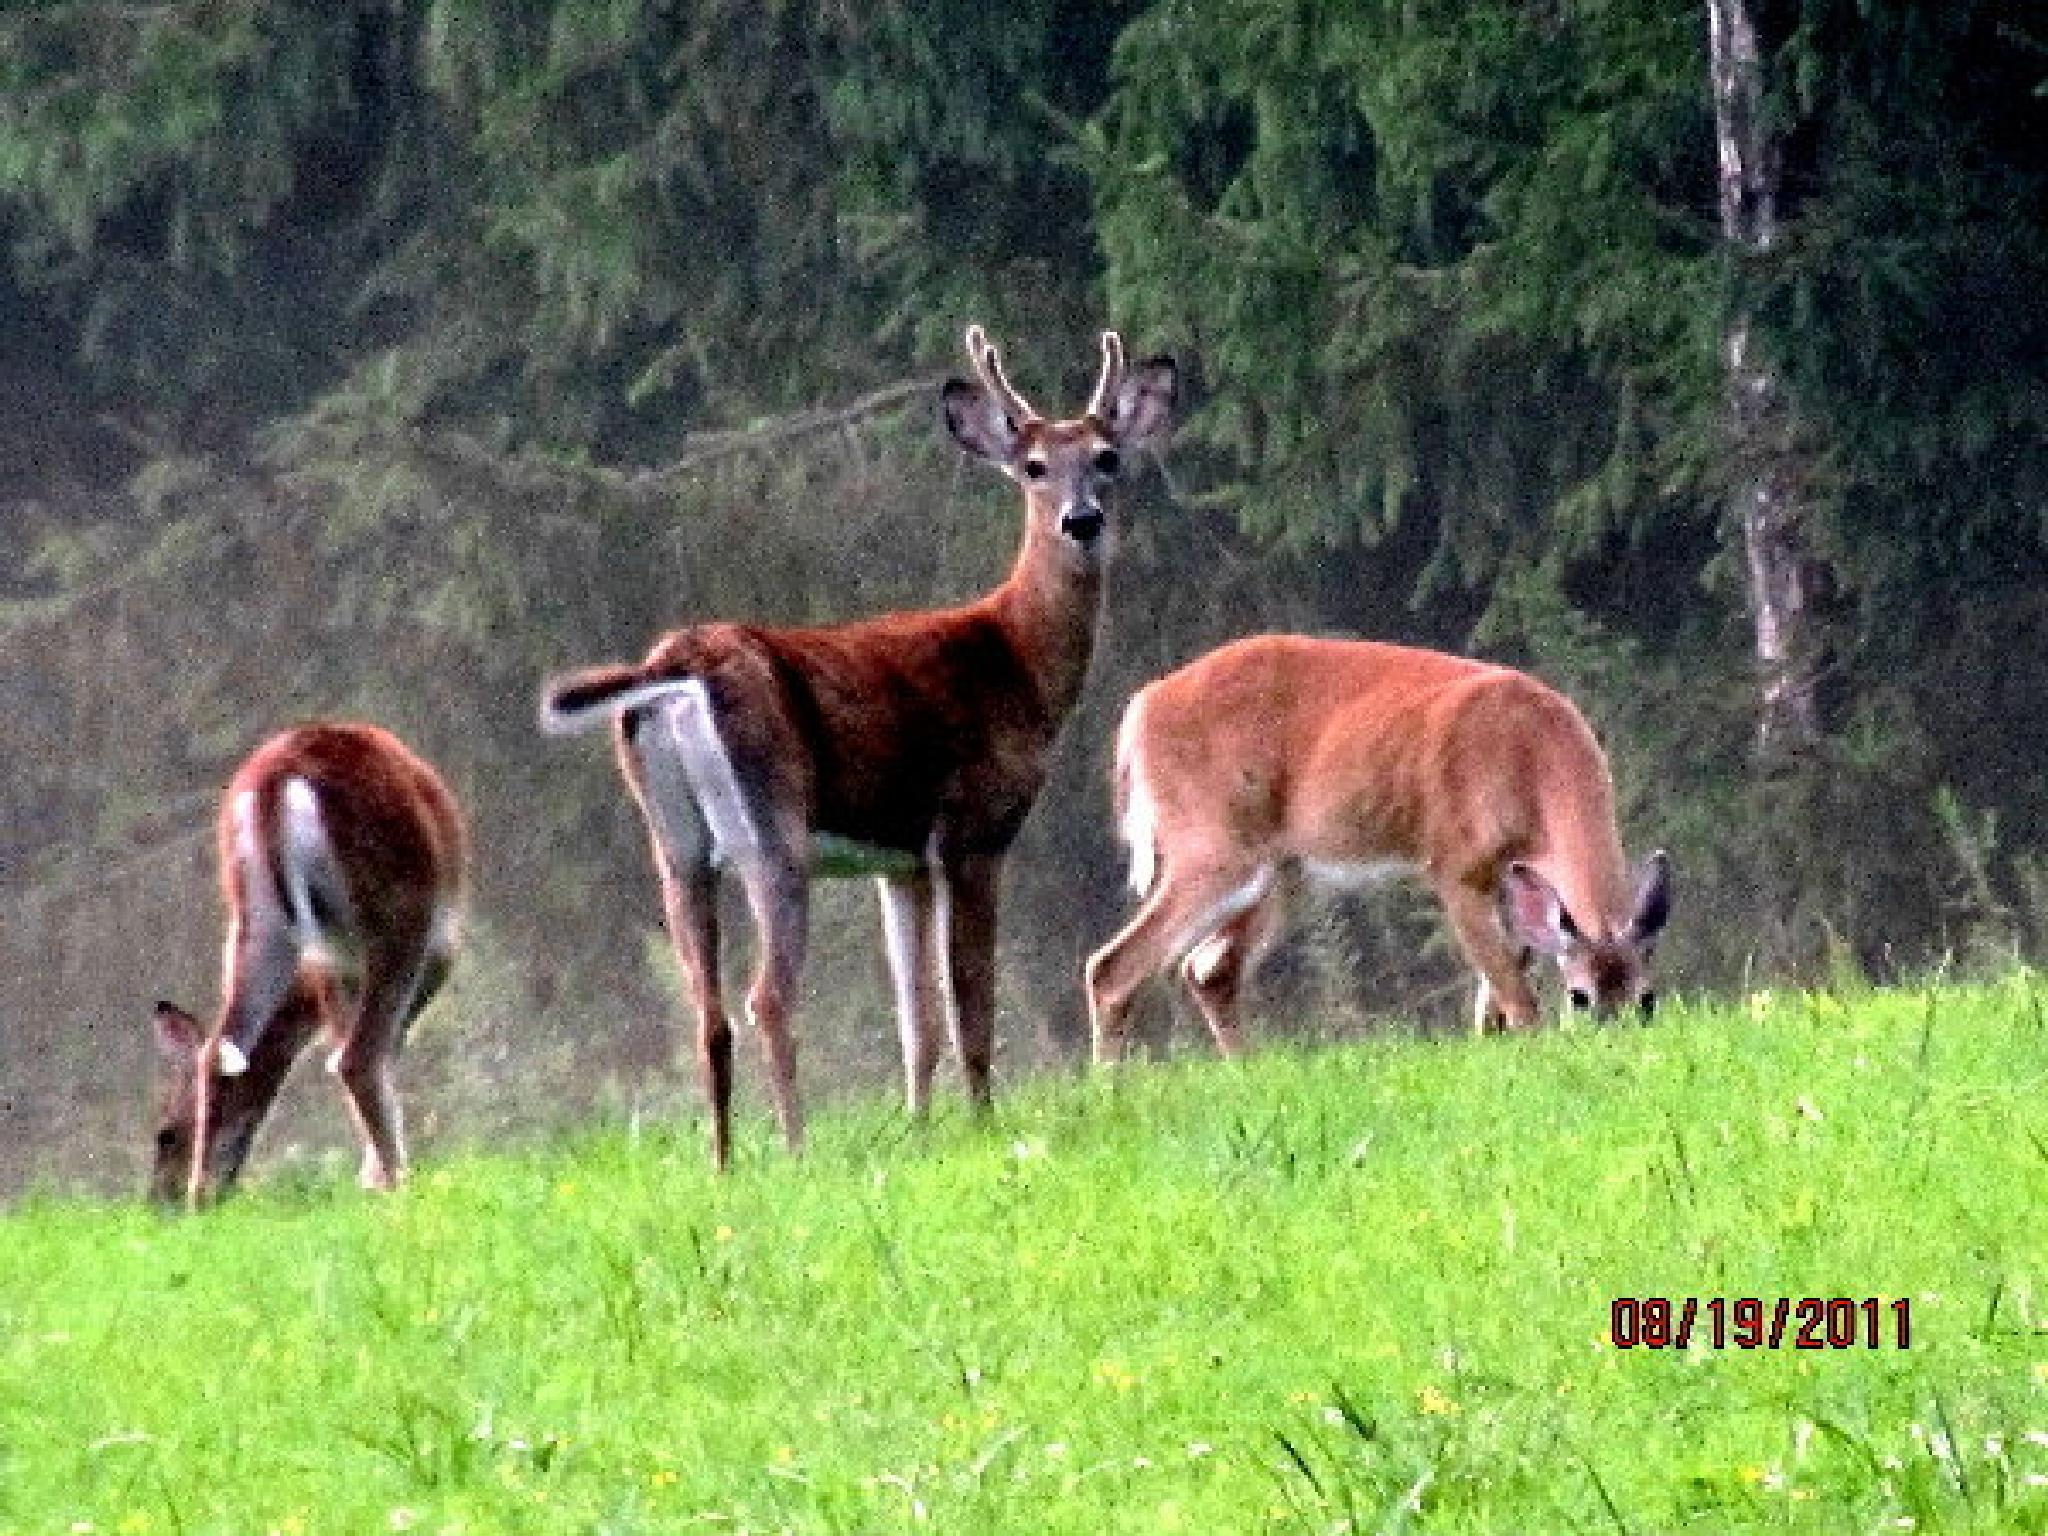 deer by cheryl.peters.9615